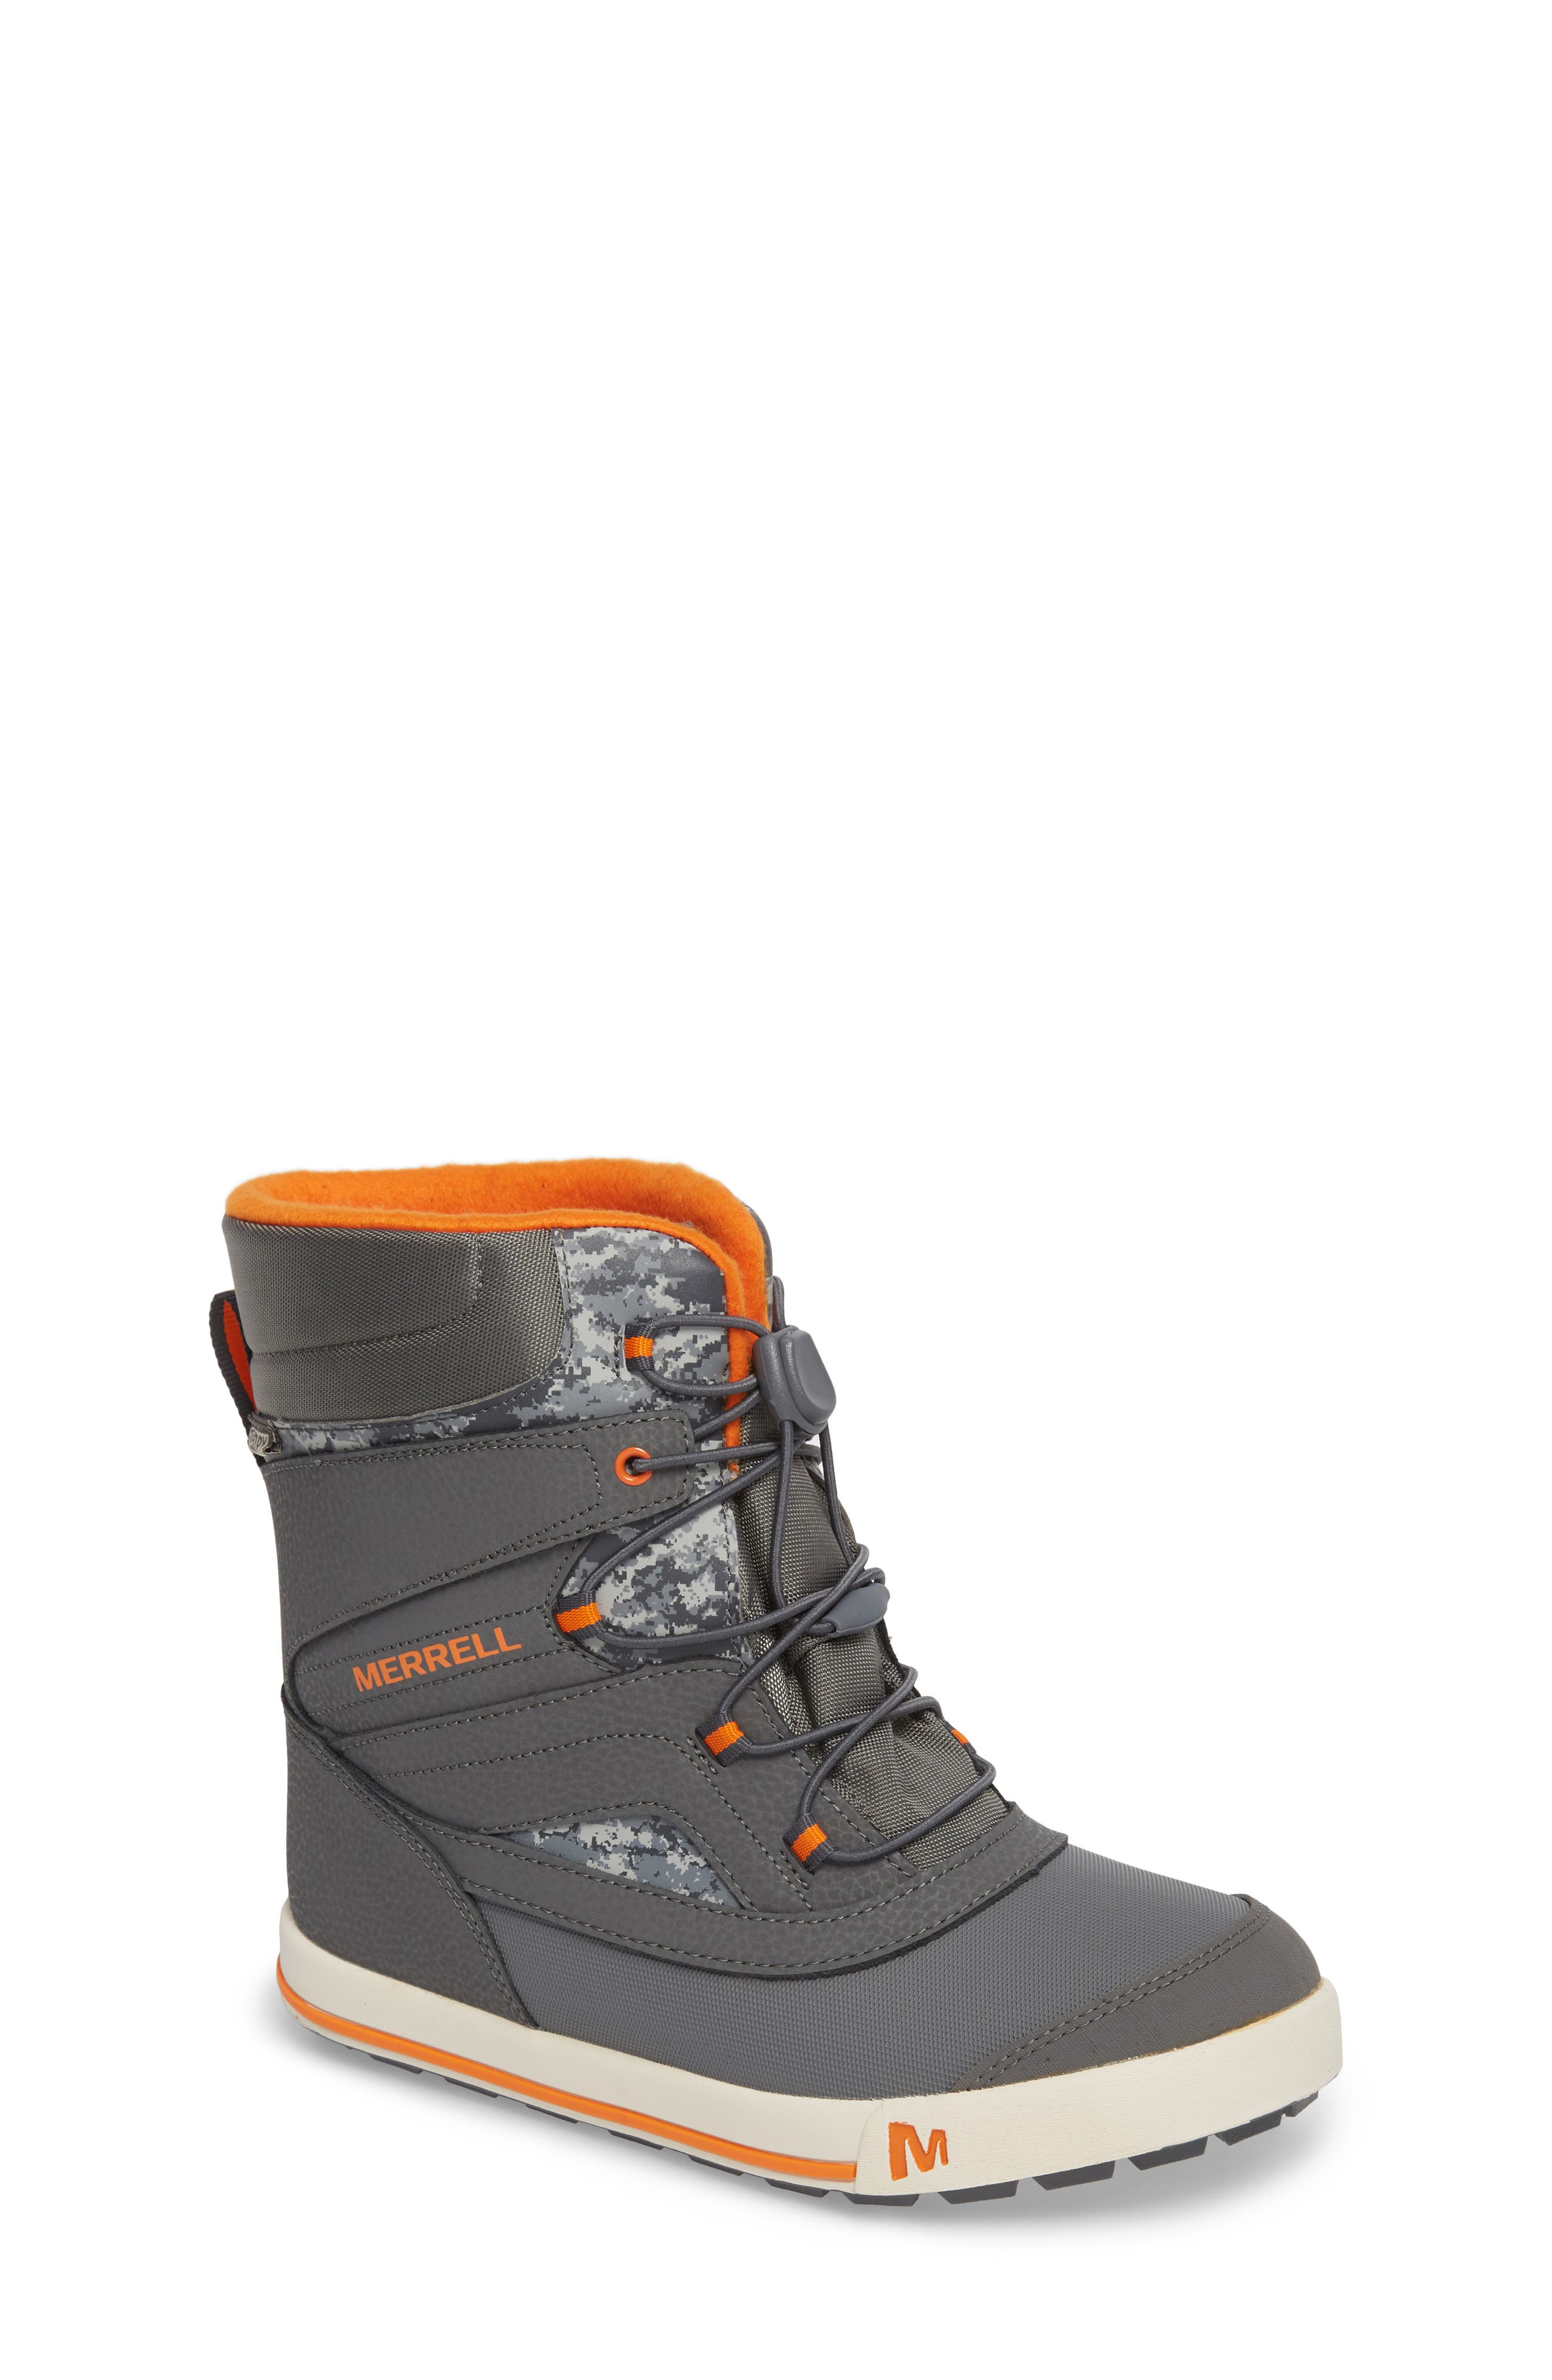 Merrell Snow Bank 2 Insulated Waterproof Boot (Toddler, Little Kid & Big Kid)